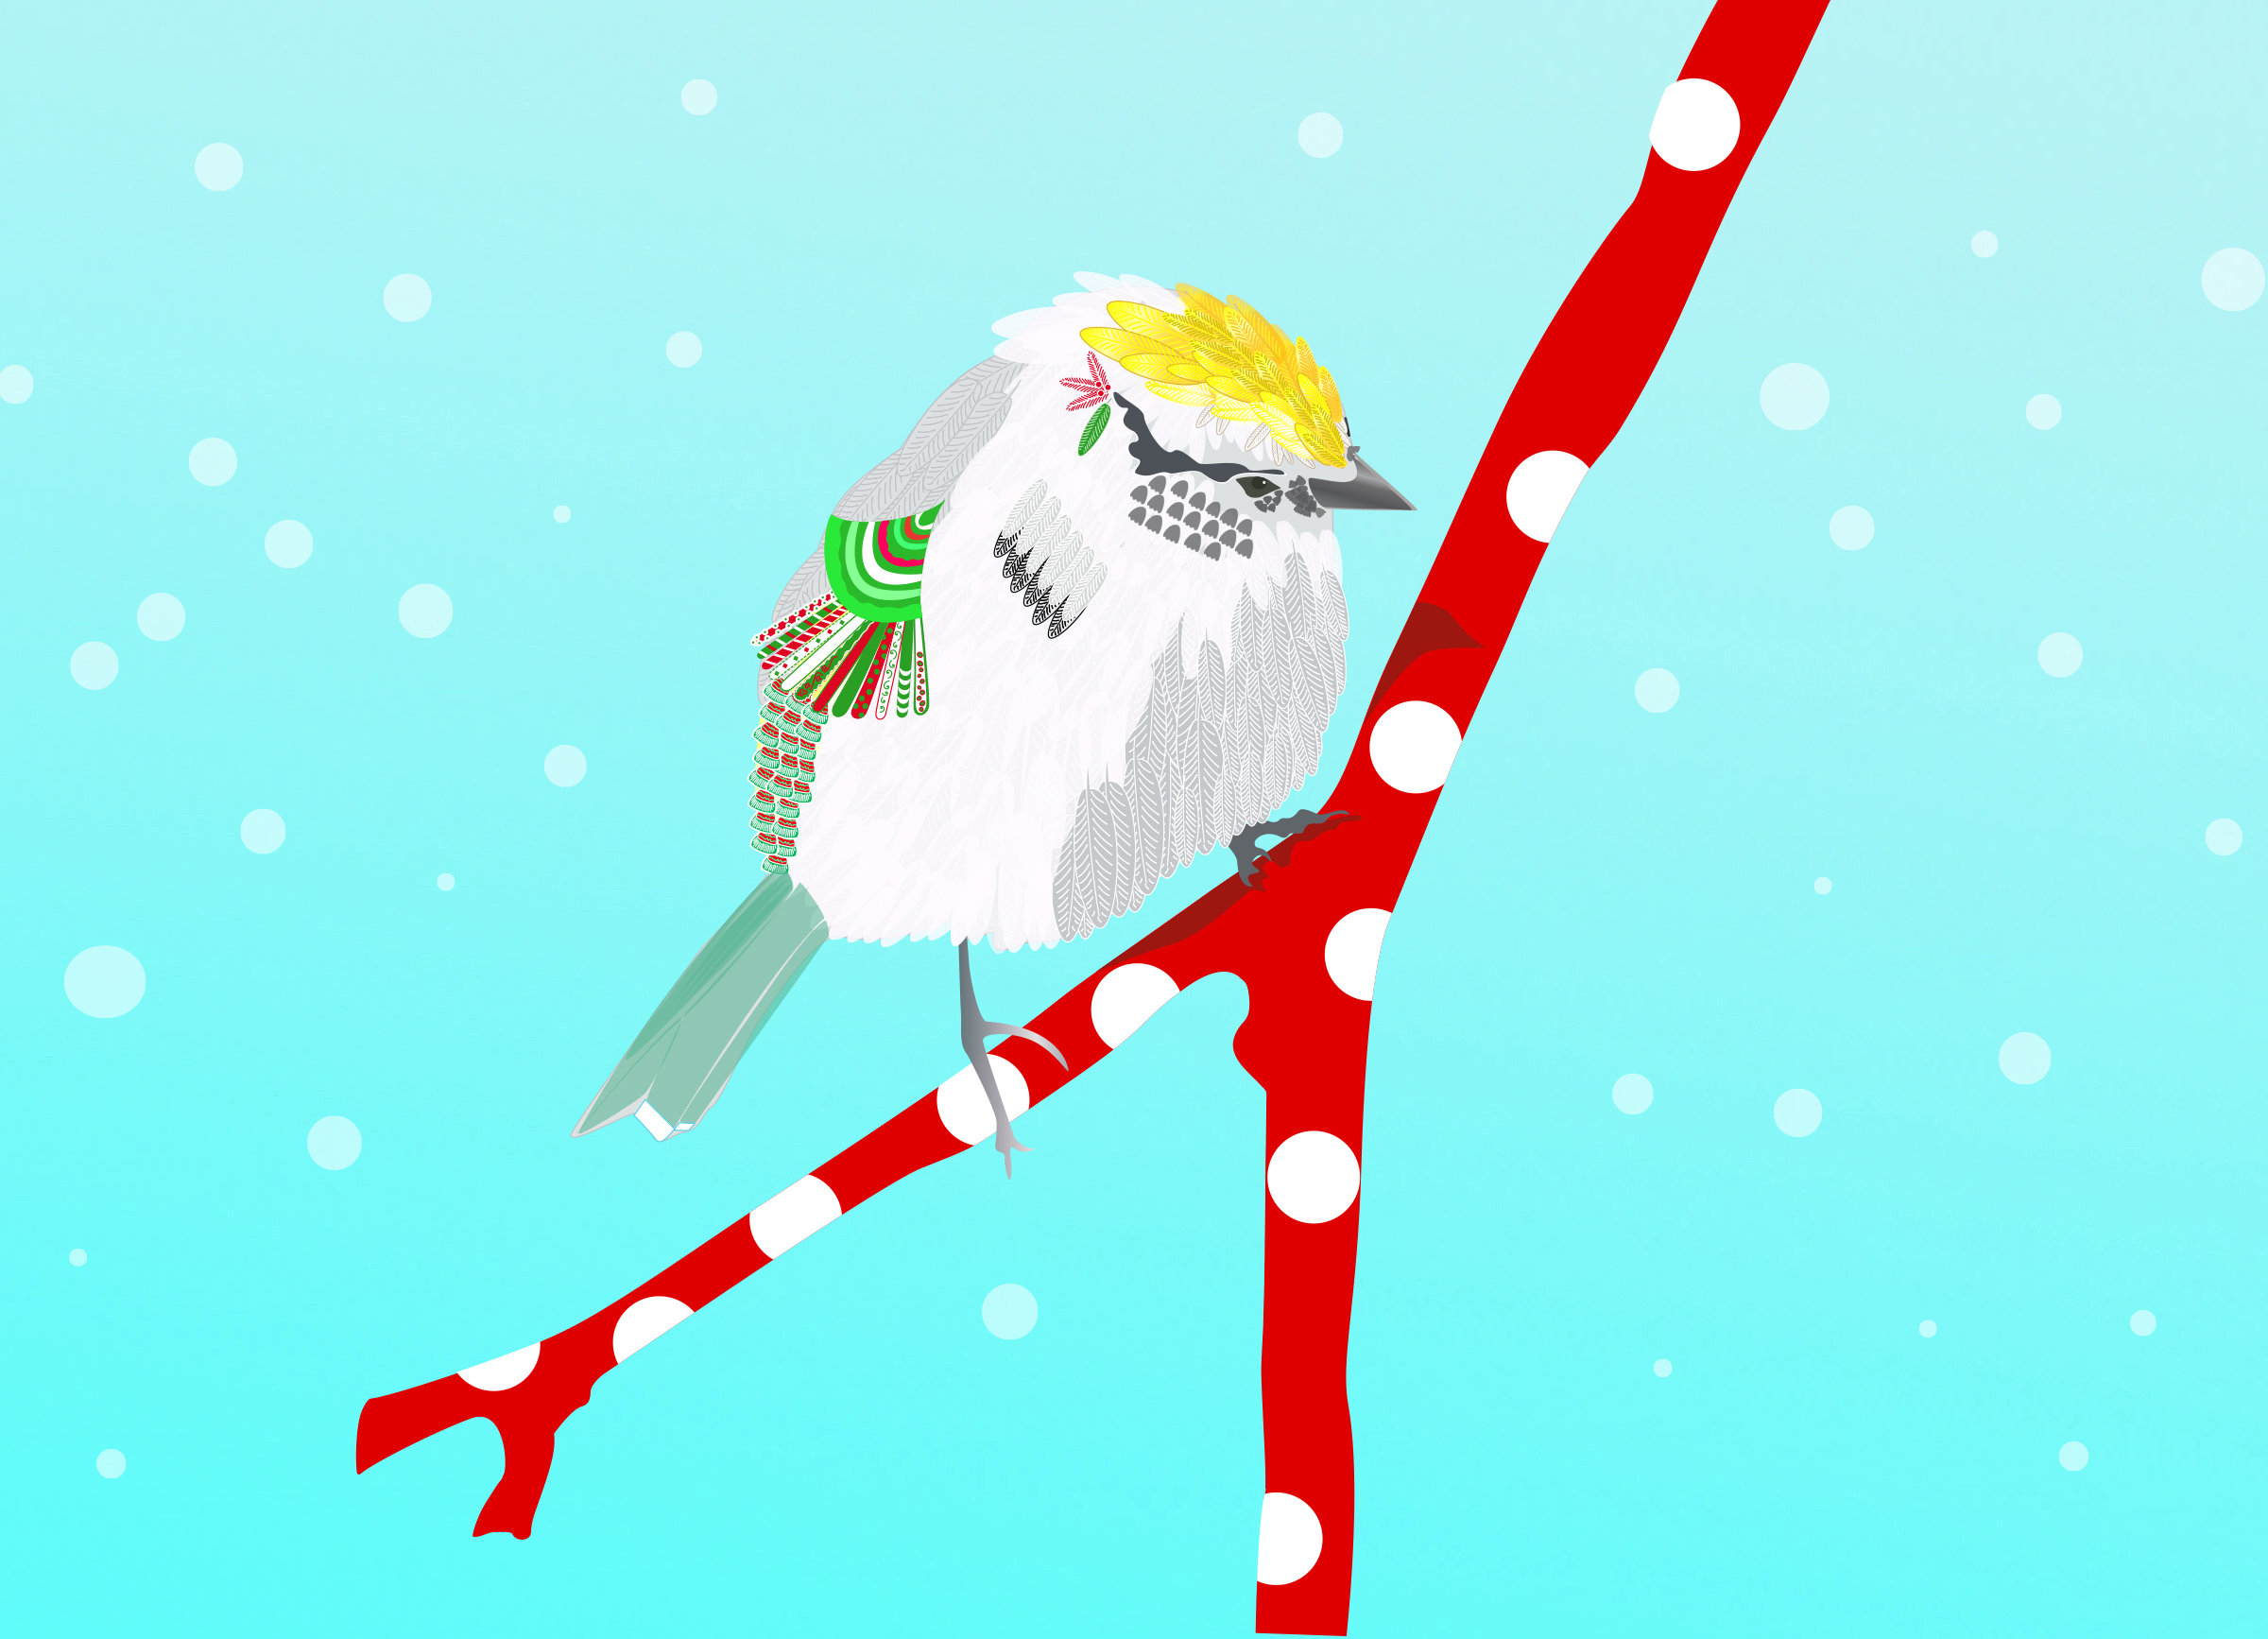 festive Chip, the sparrow, on a red, polka-dot branch